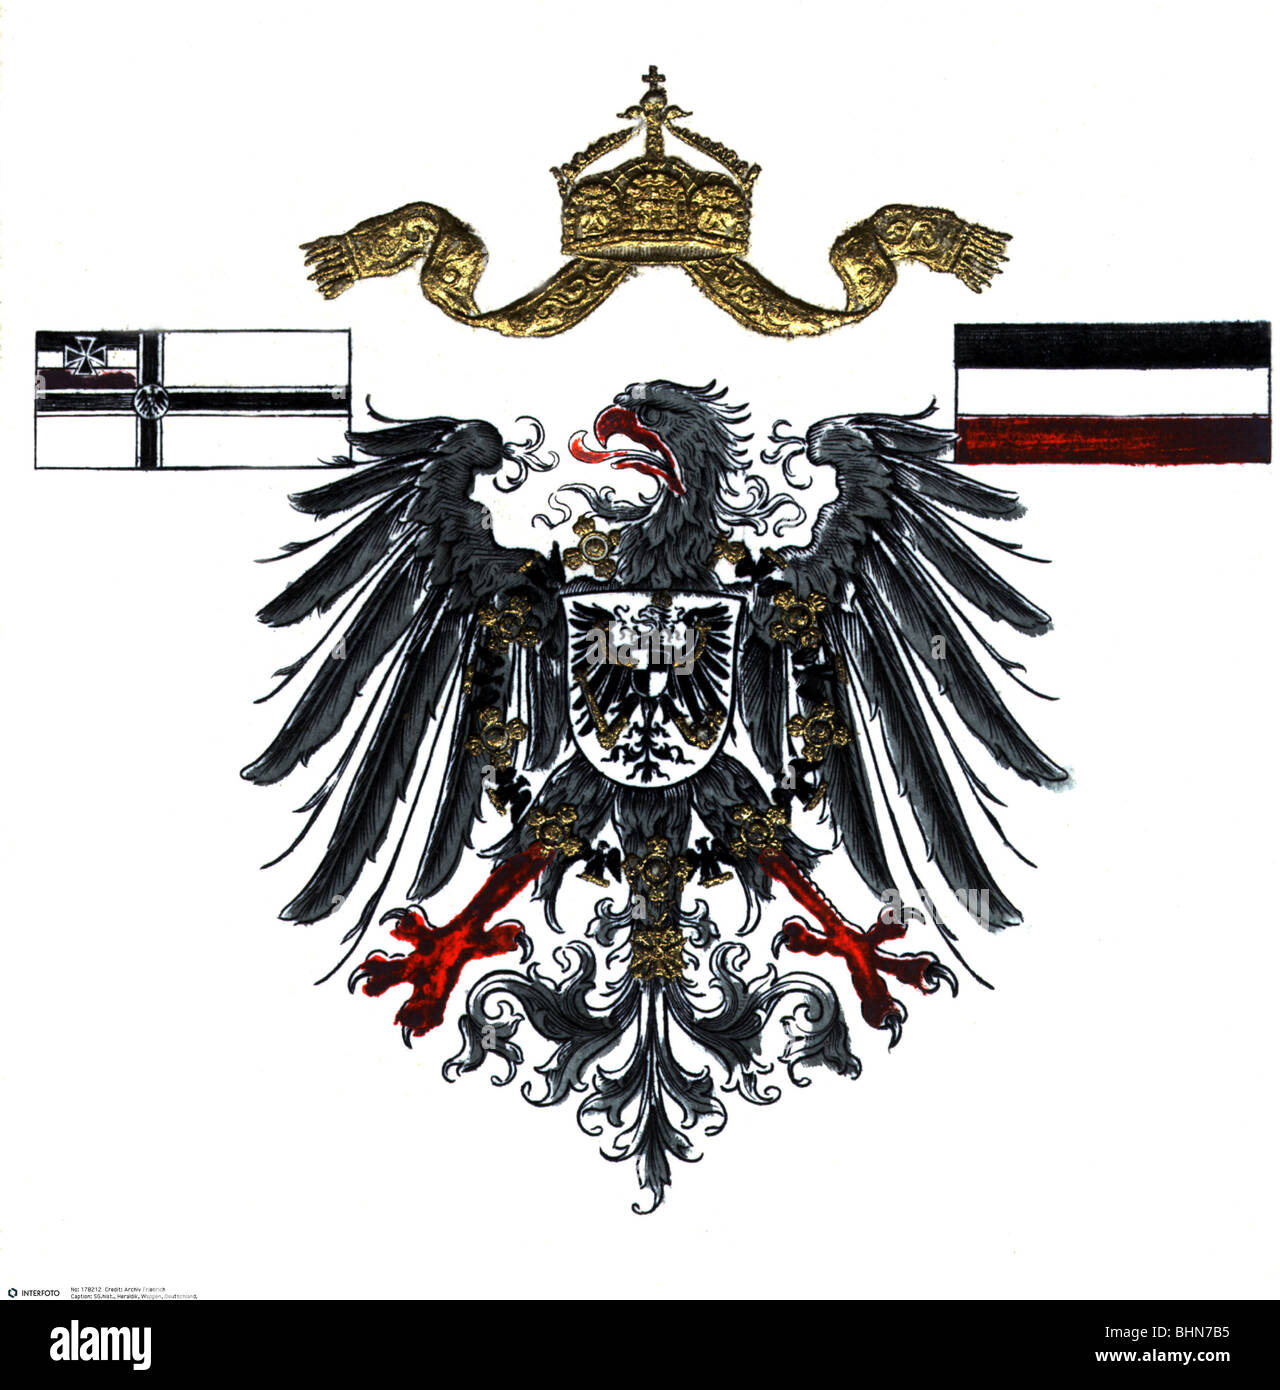 heraldry, coat of arms, Germany, imperial eagle with war flag of the ...